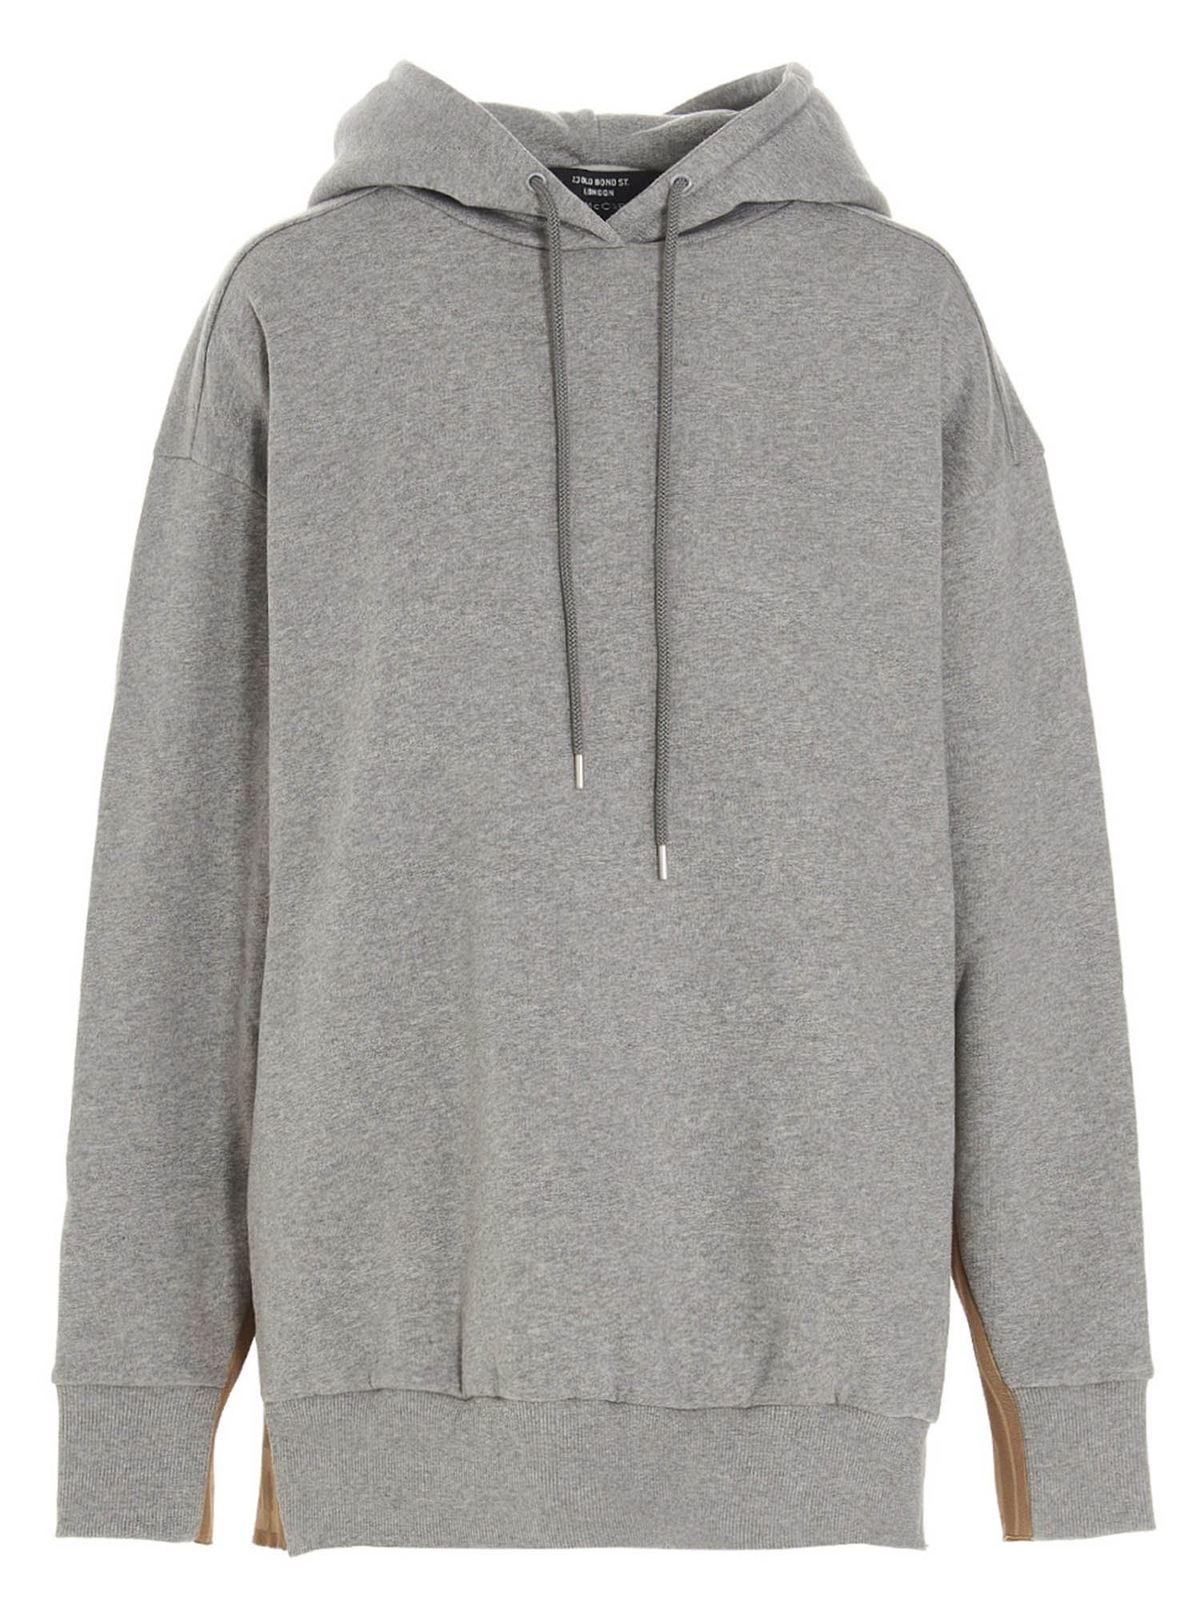 Stella Mccartney LOGO BAND HOODIE IN GREY